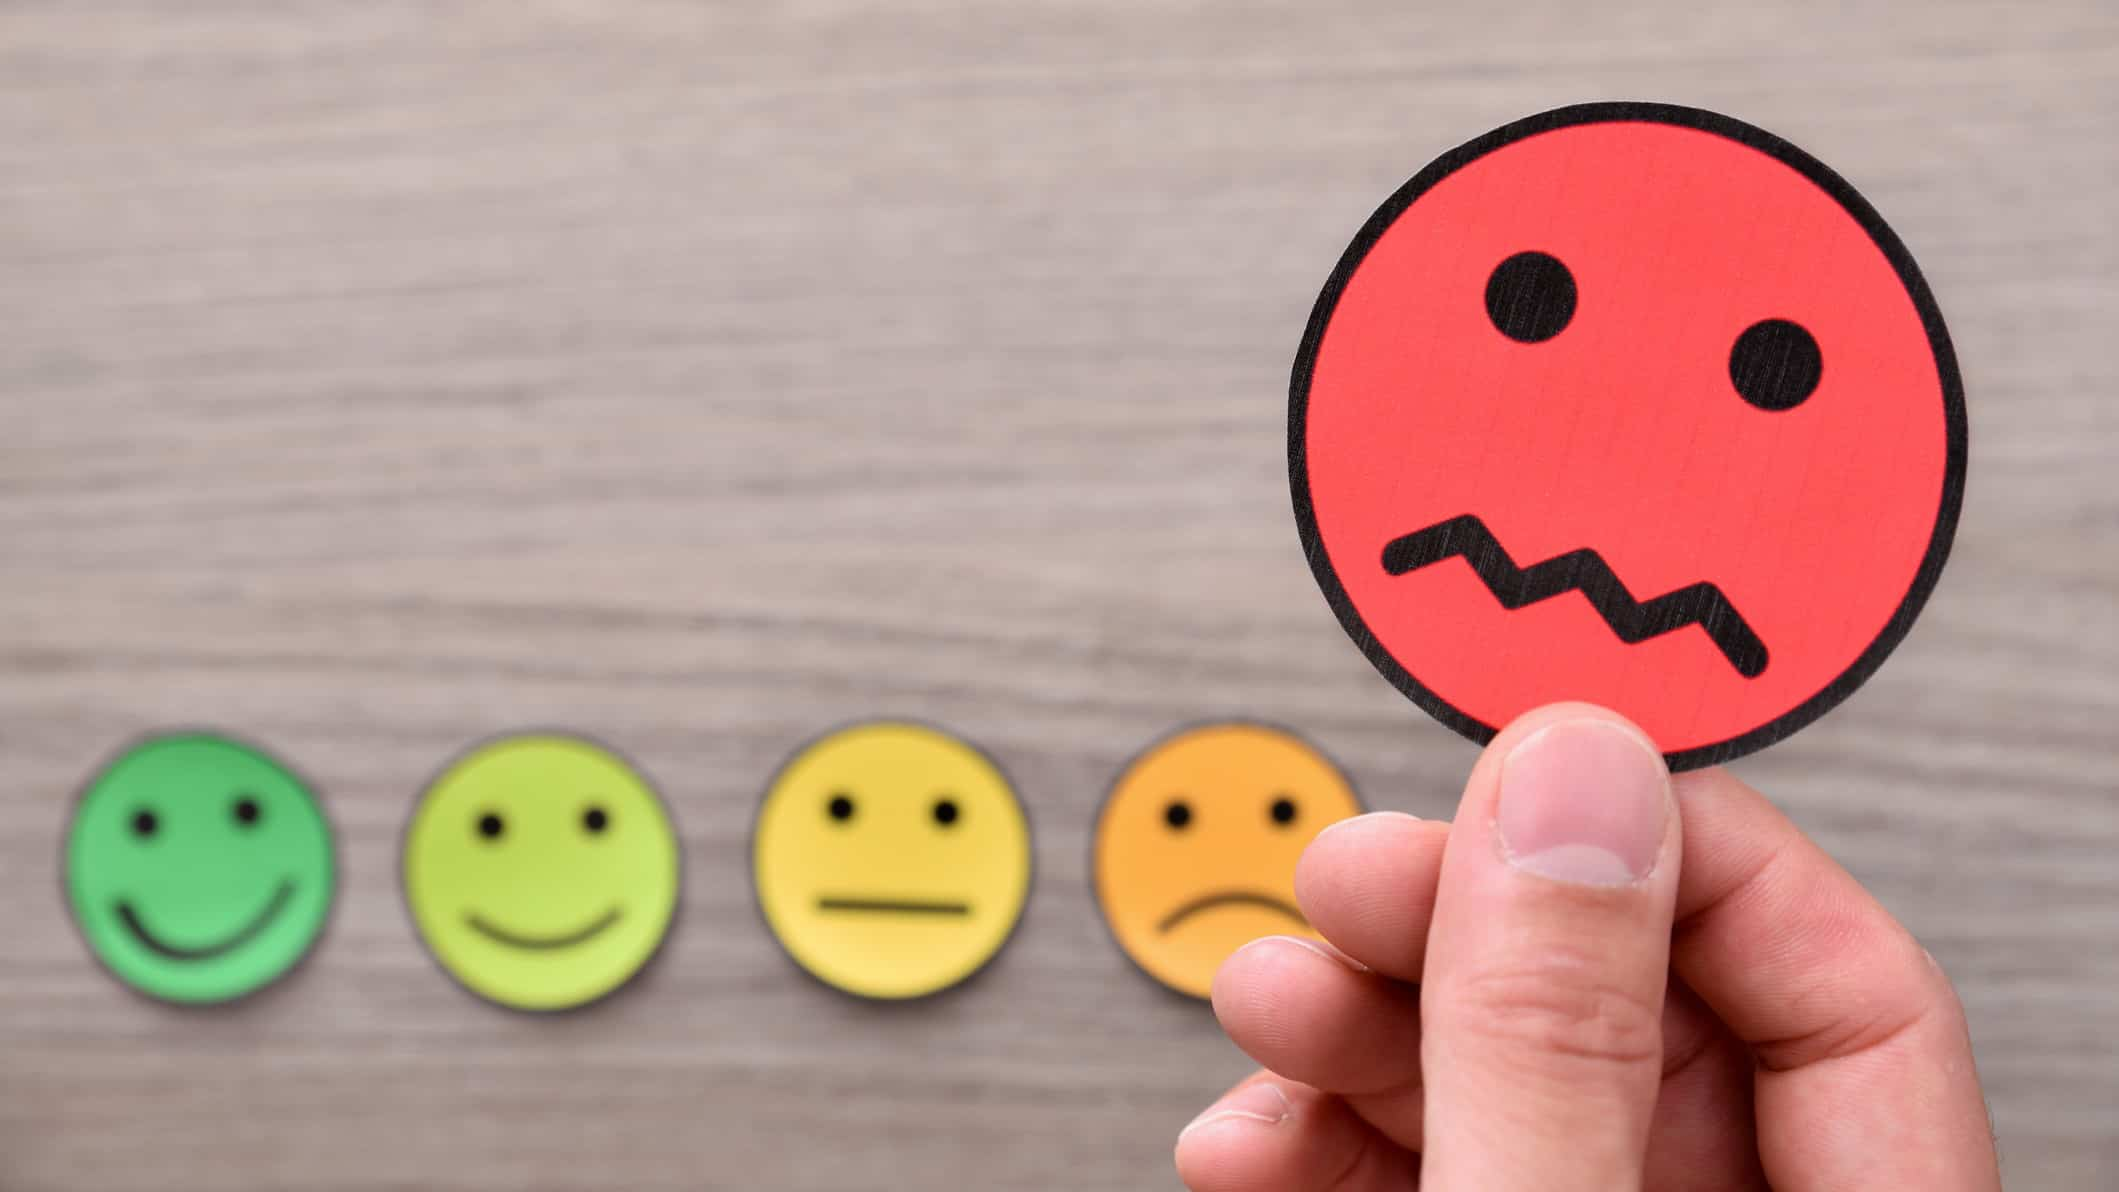 hand selecting unhappy face icon from choice of happy and neutral faces signifying worst performing asx shares